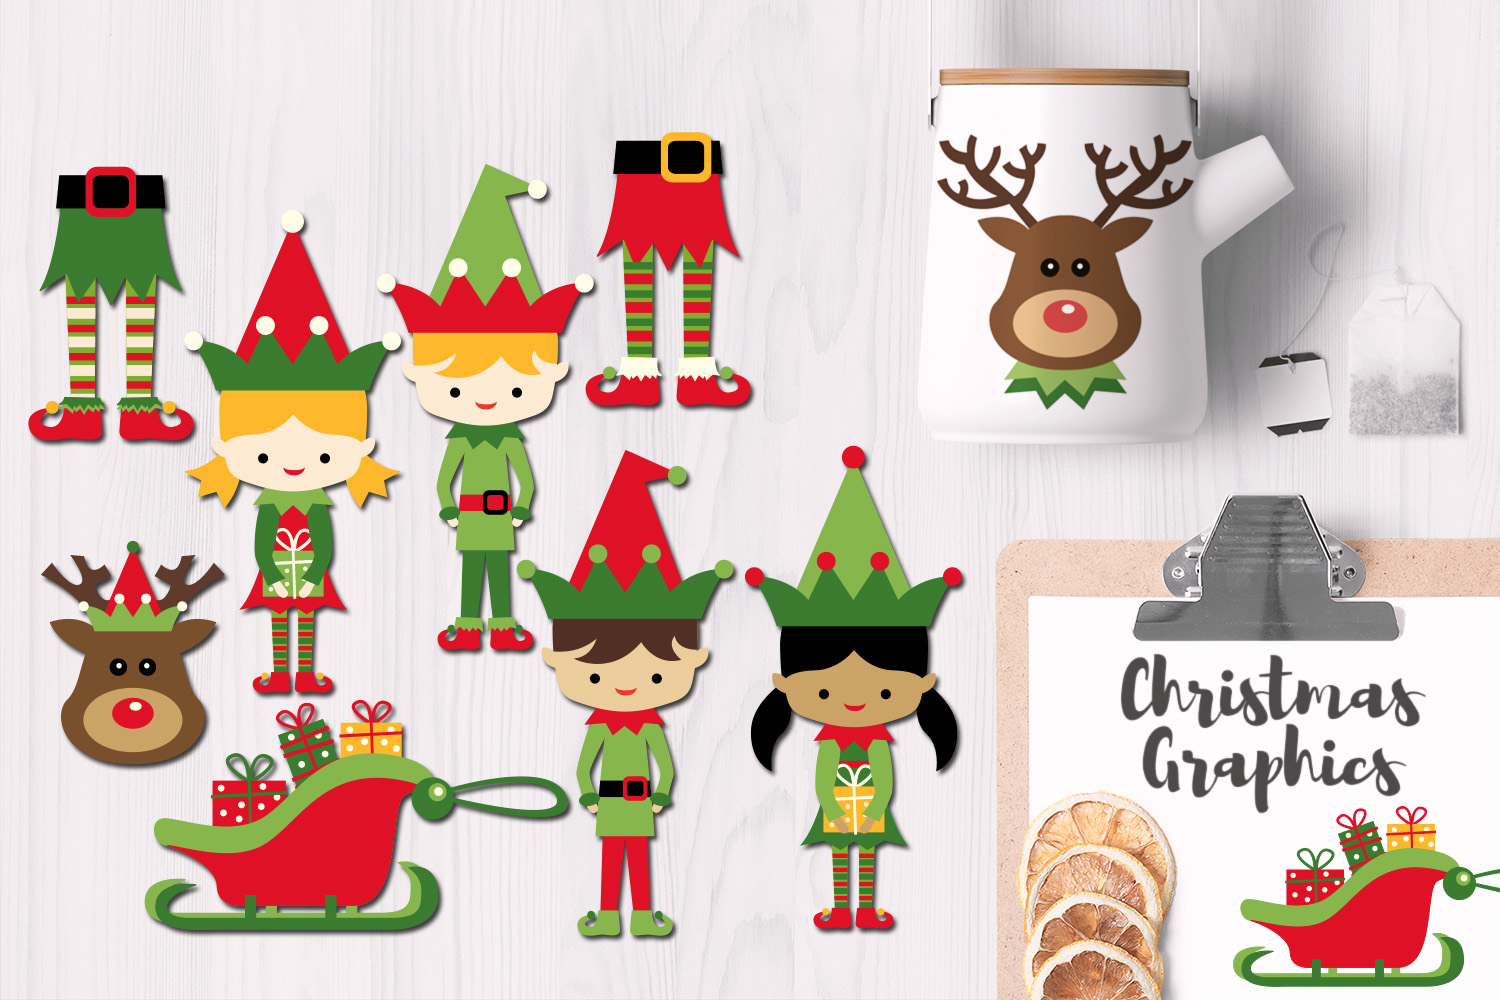 Download Free Christmas Feet Elf Reindeer Head Sleigh Graphic By Revidevi for Cricut Explore, Silhouette and other cutting machines.